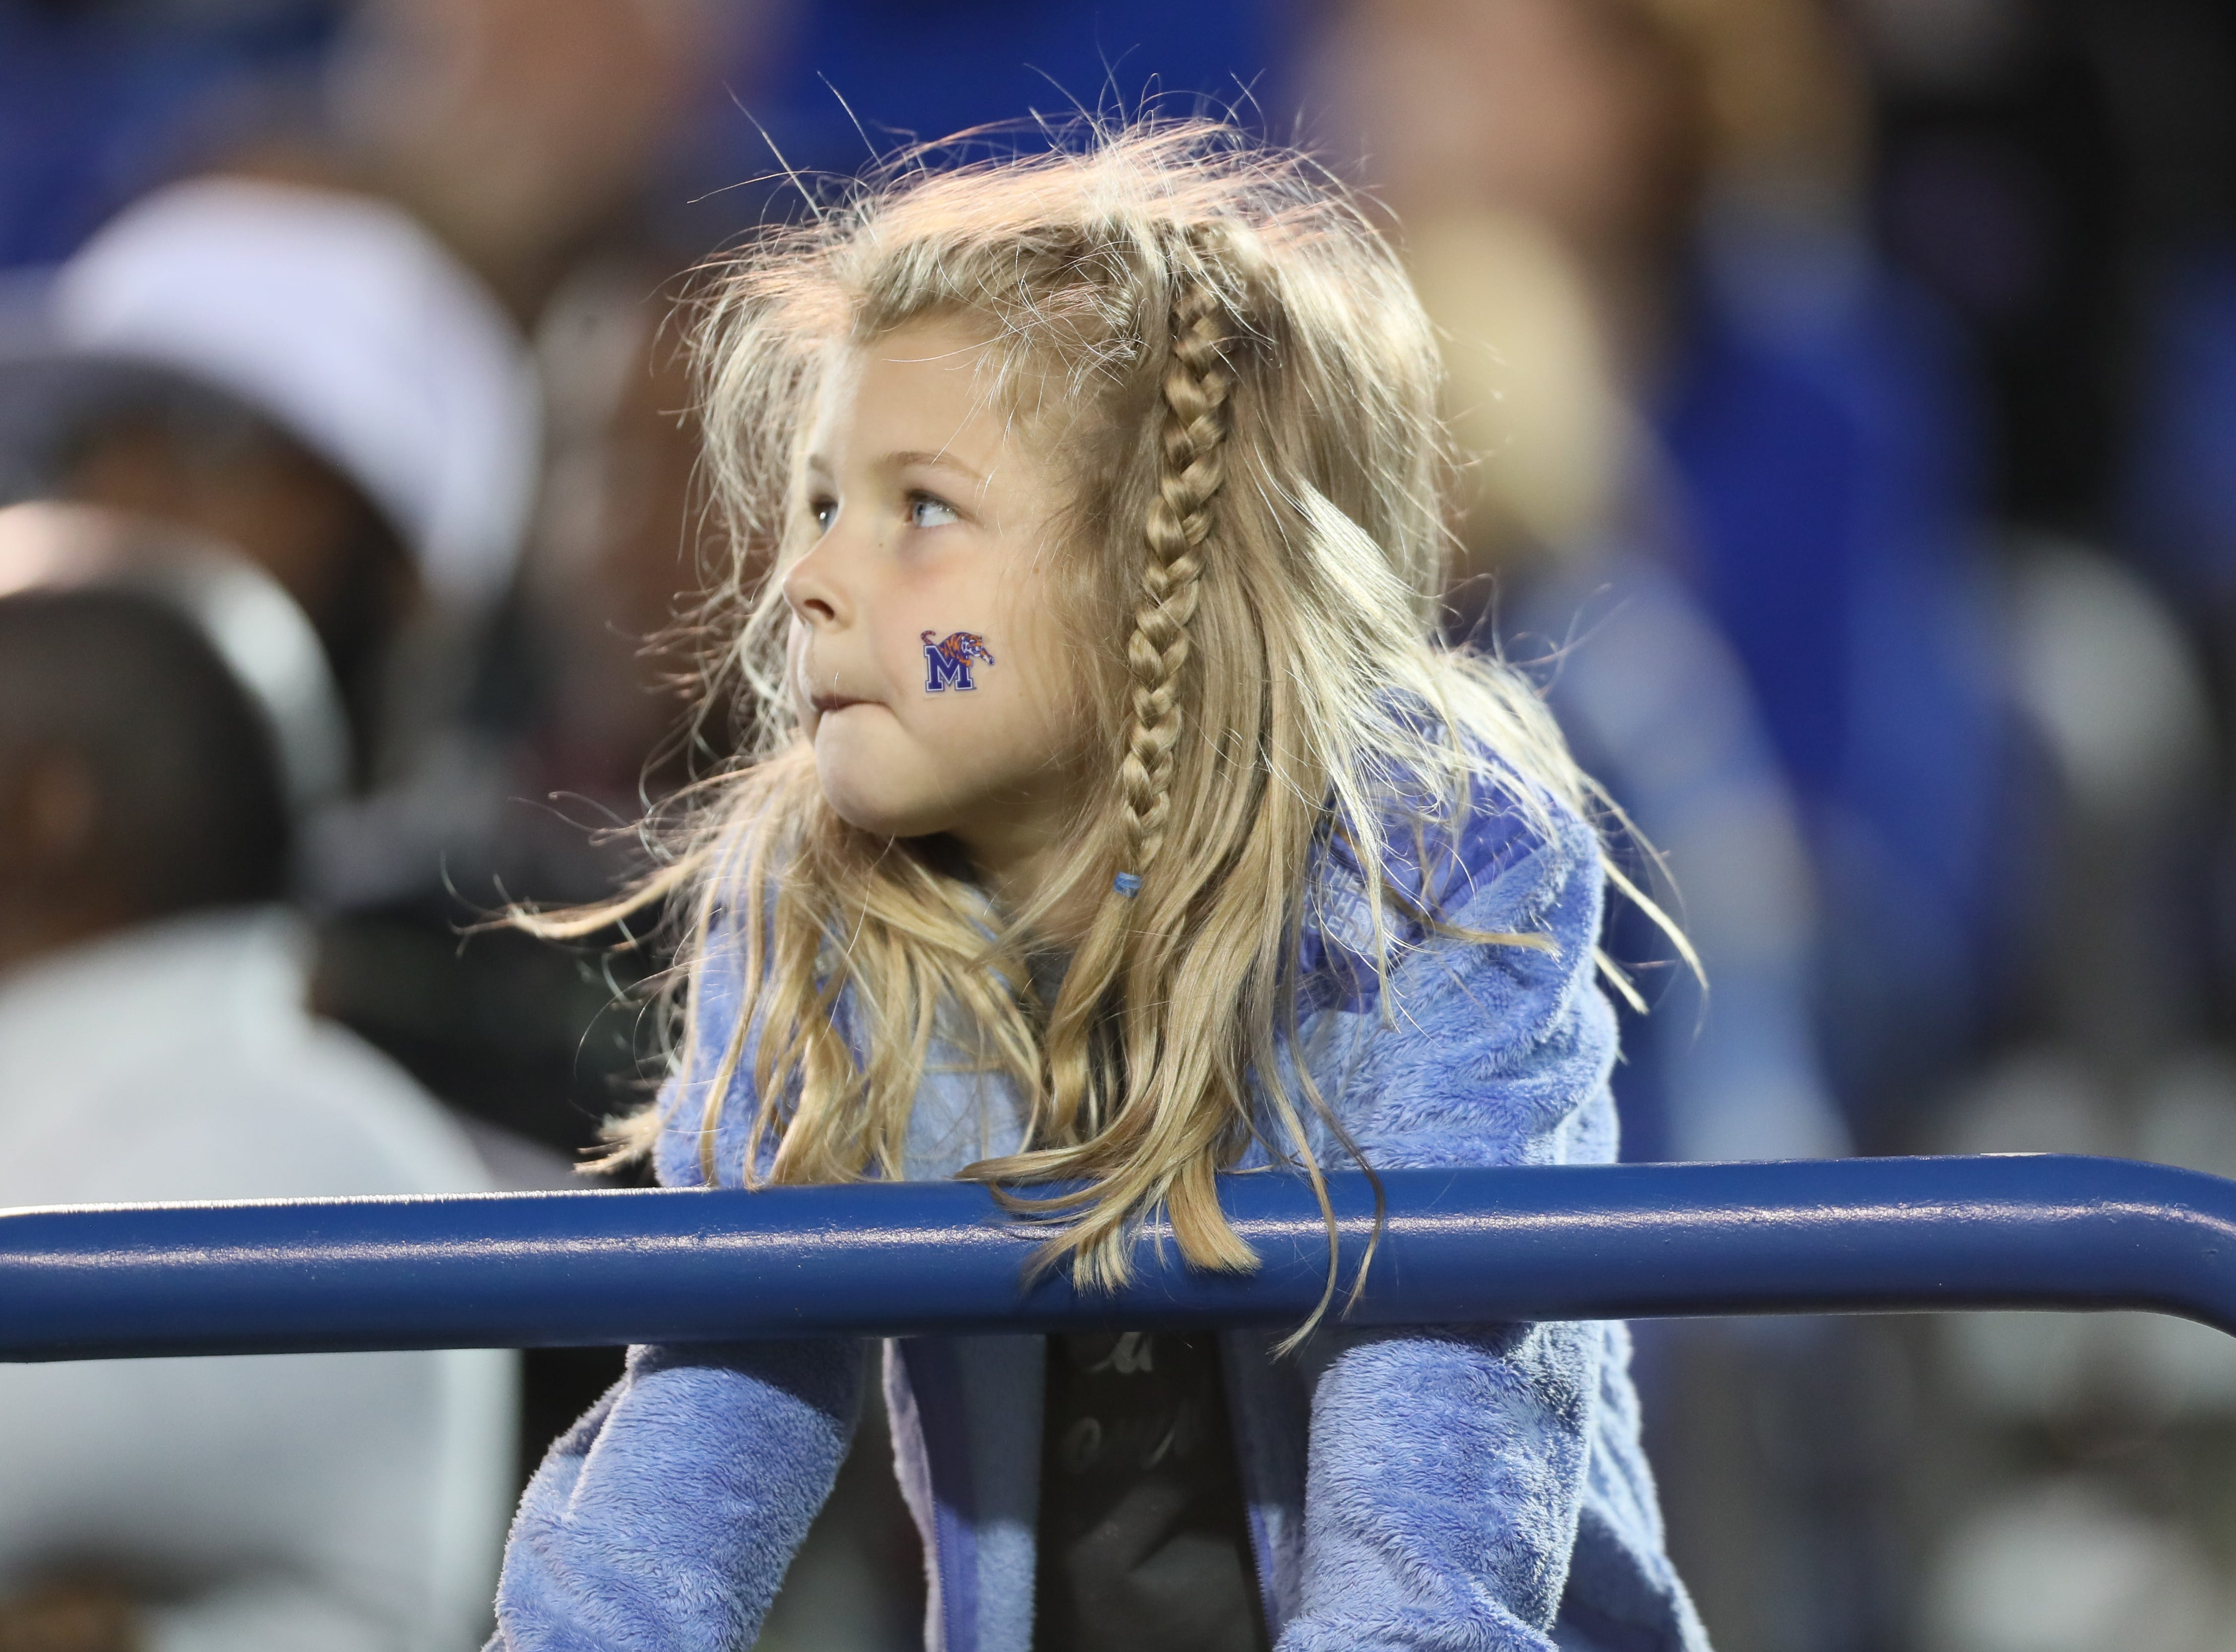 A Memphis Tigers fan watches from the stands during their Friday Night Stripes spring game at Liberty Bowl Memorial Stadium on Friday, April 12, 2019.